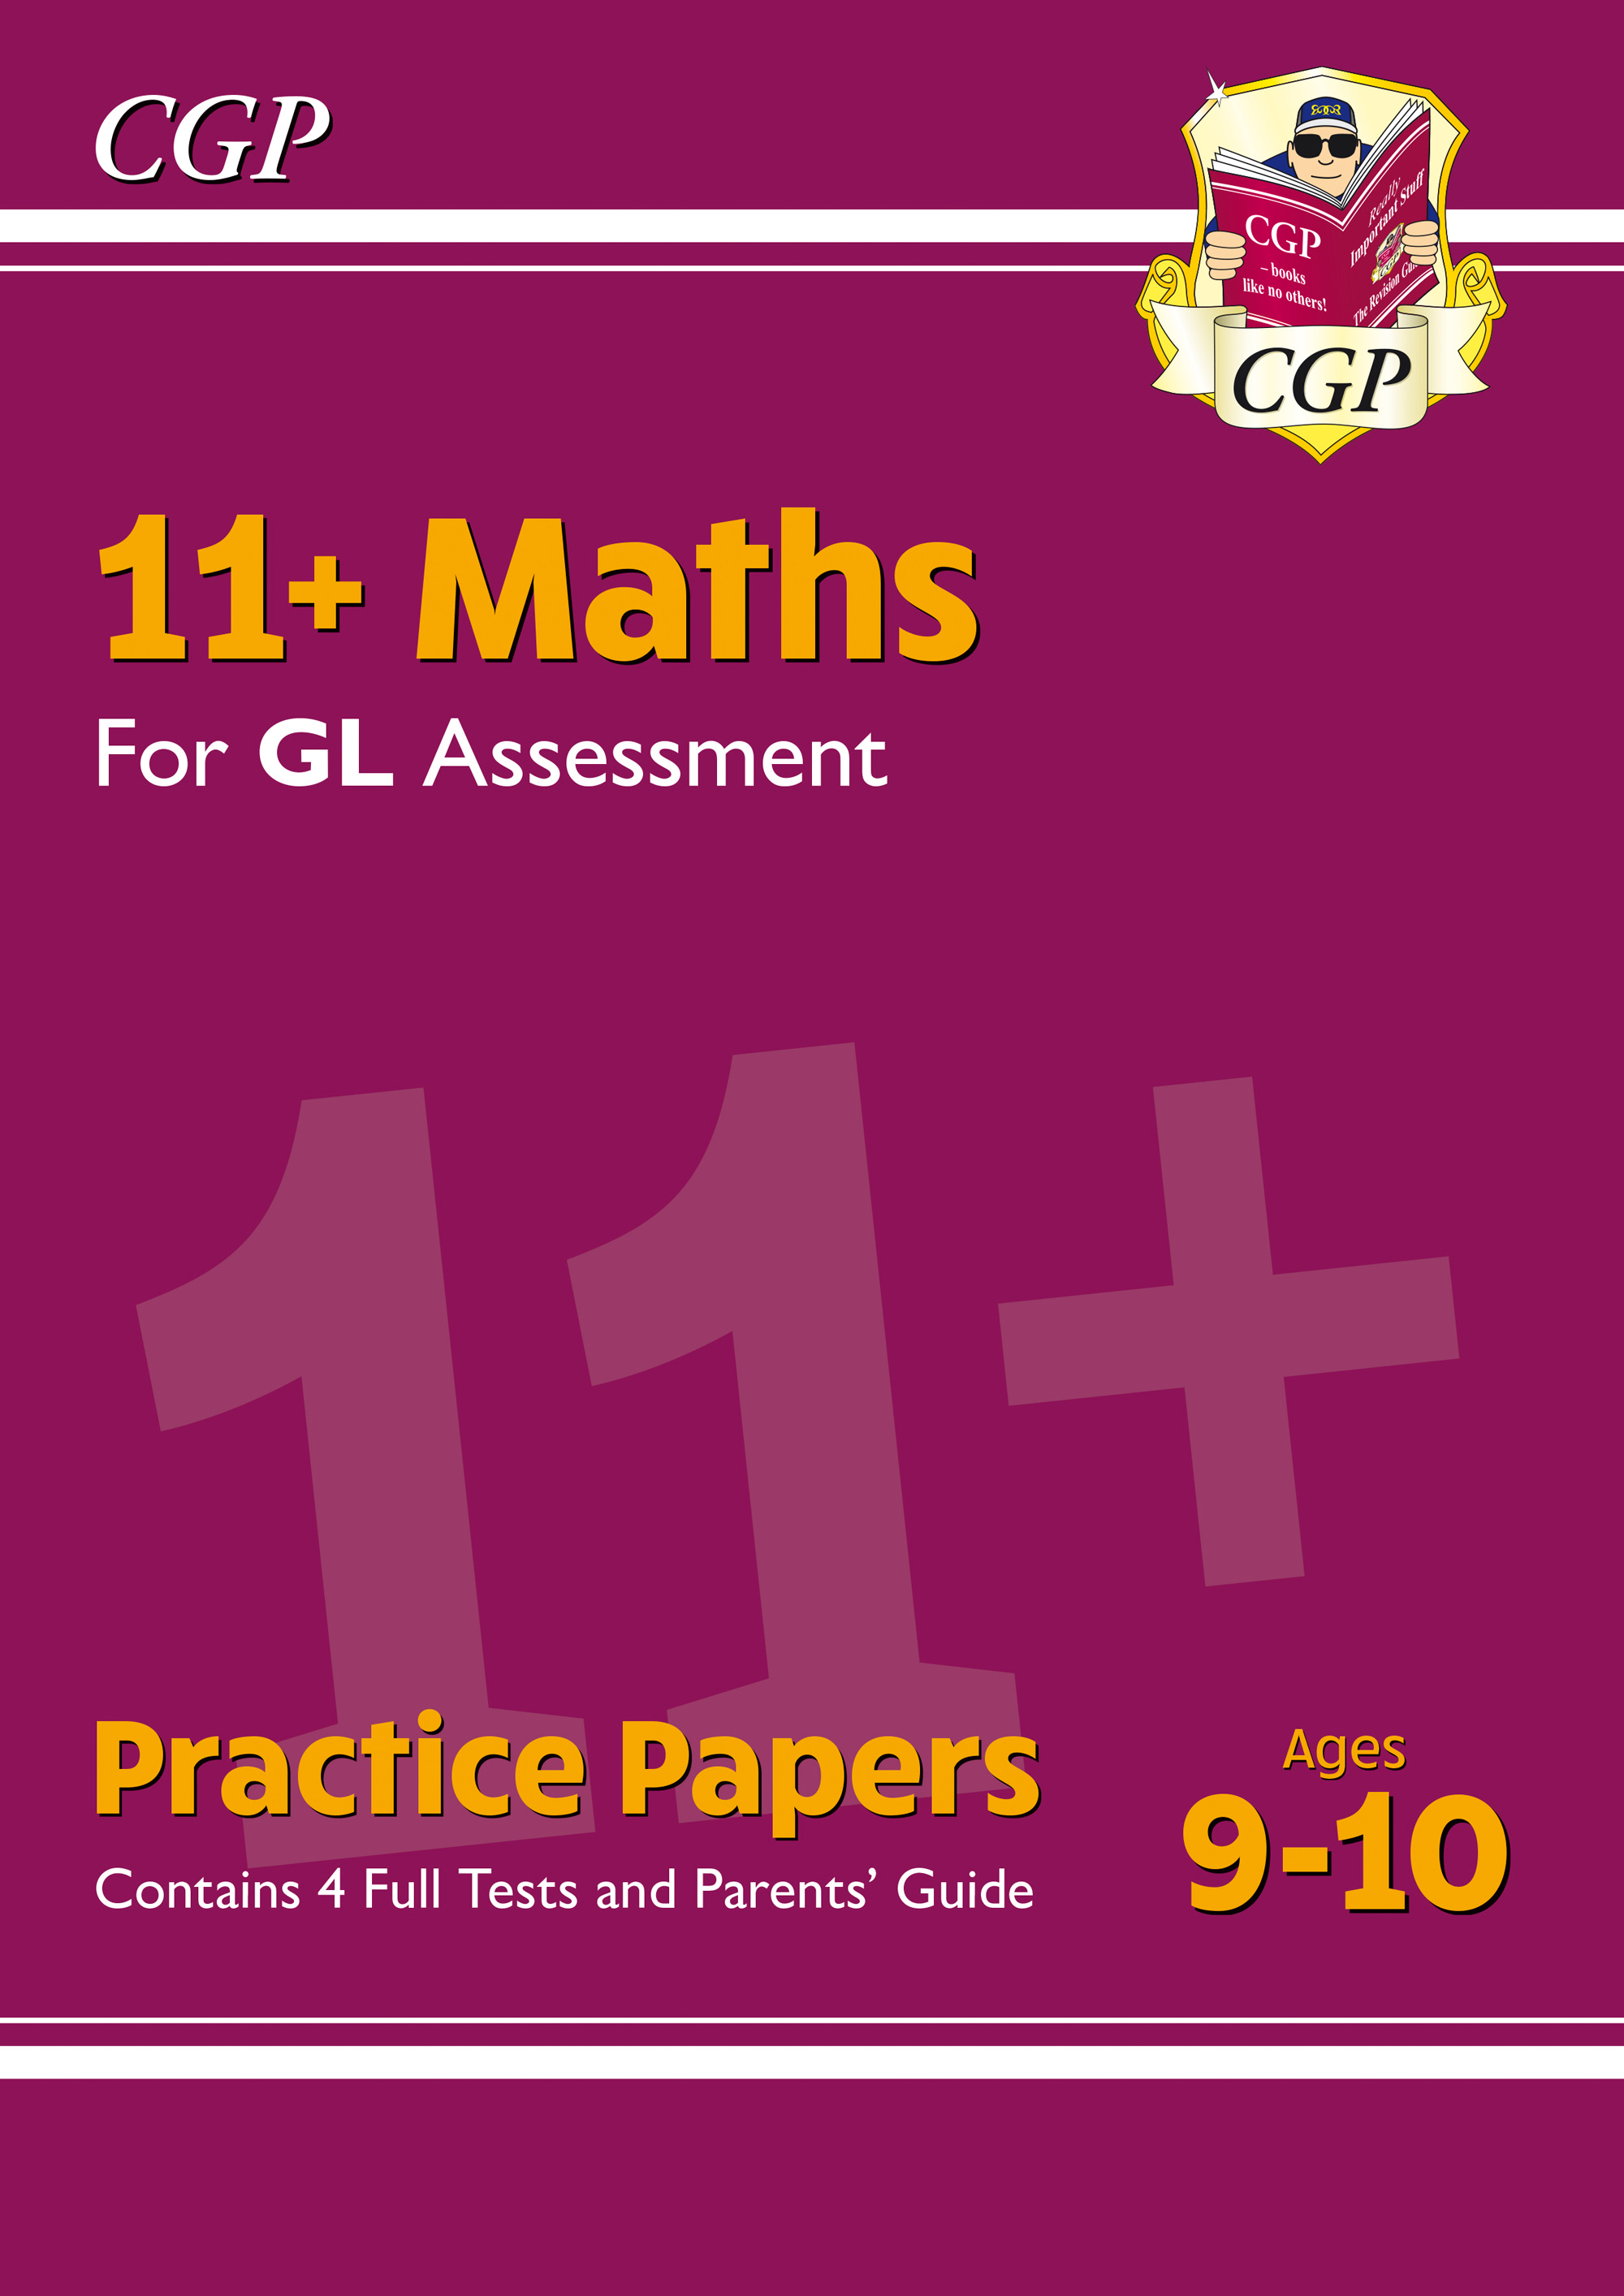 MH5PE1DK - New 11+ GL Maths Practice Papers - Ages 9-10 (with Parents' Guide)